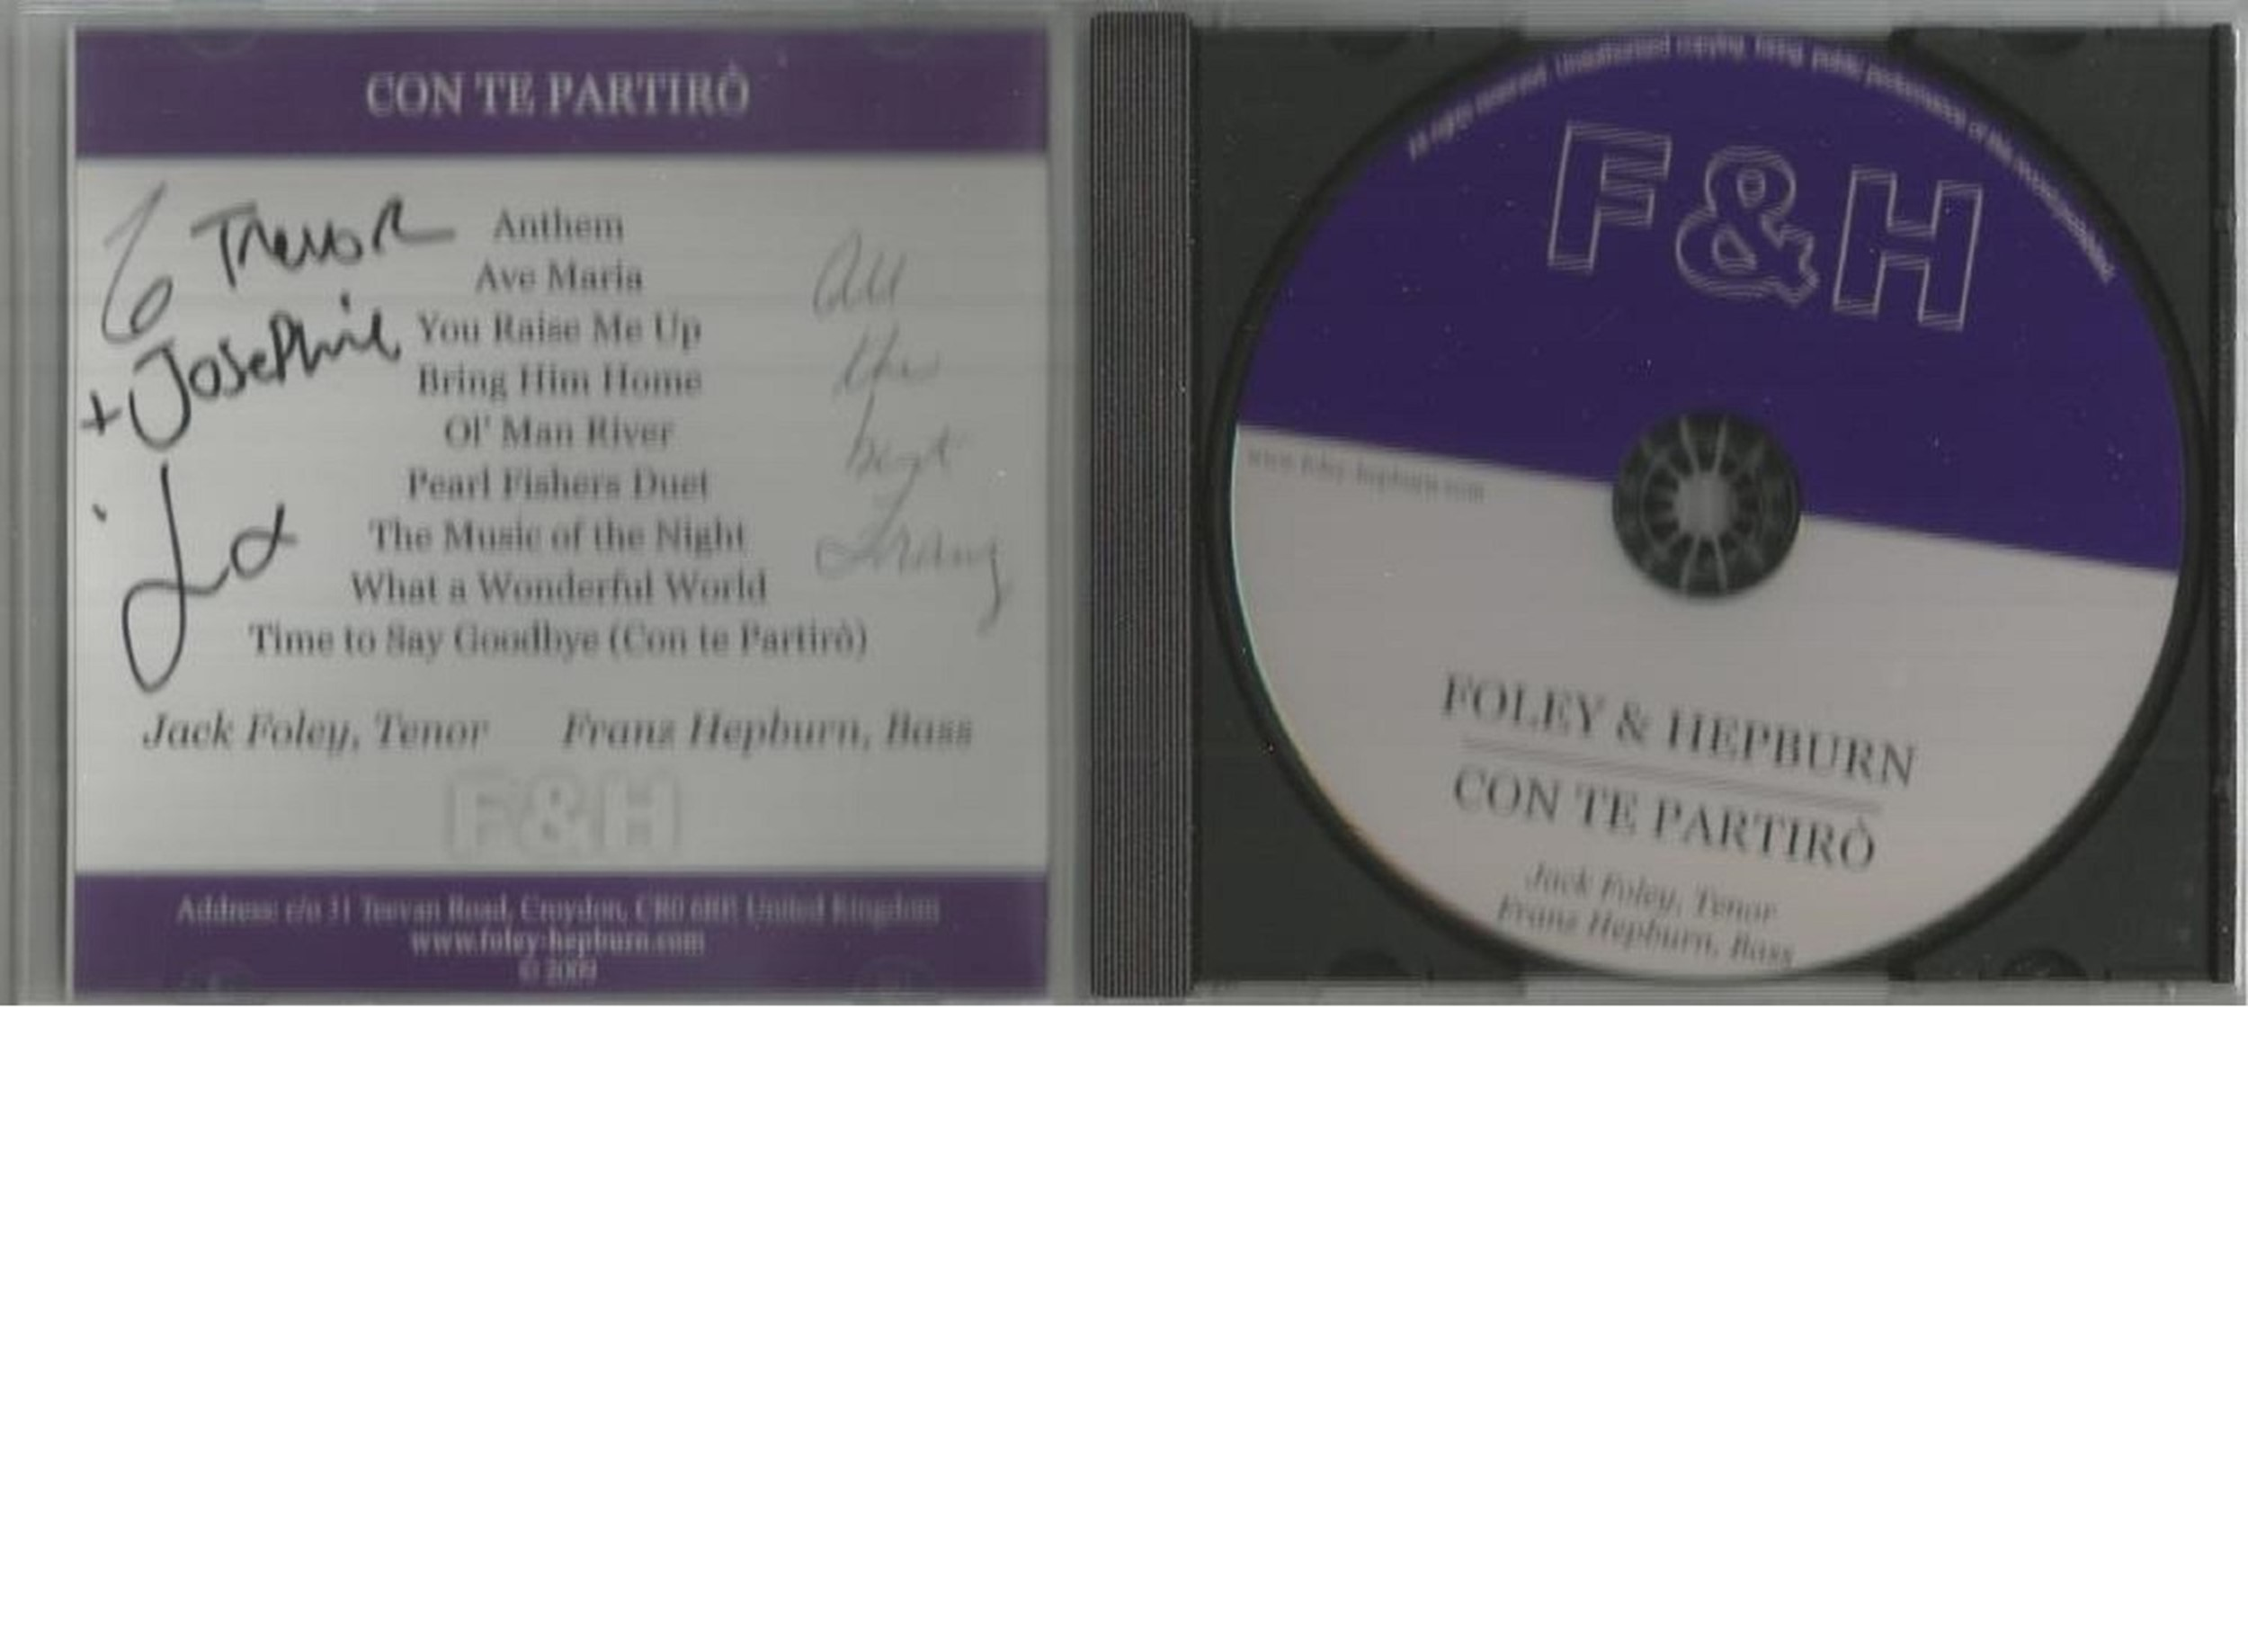 6 Signed CDs Including Andrea Ross Moon River Disc Included, Foley and Hepburn Con Te Partiro Disc - Image 5 of 6